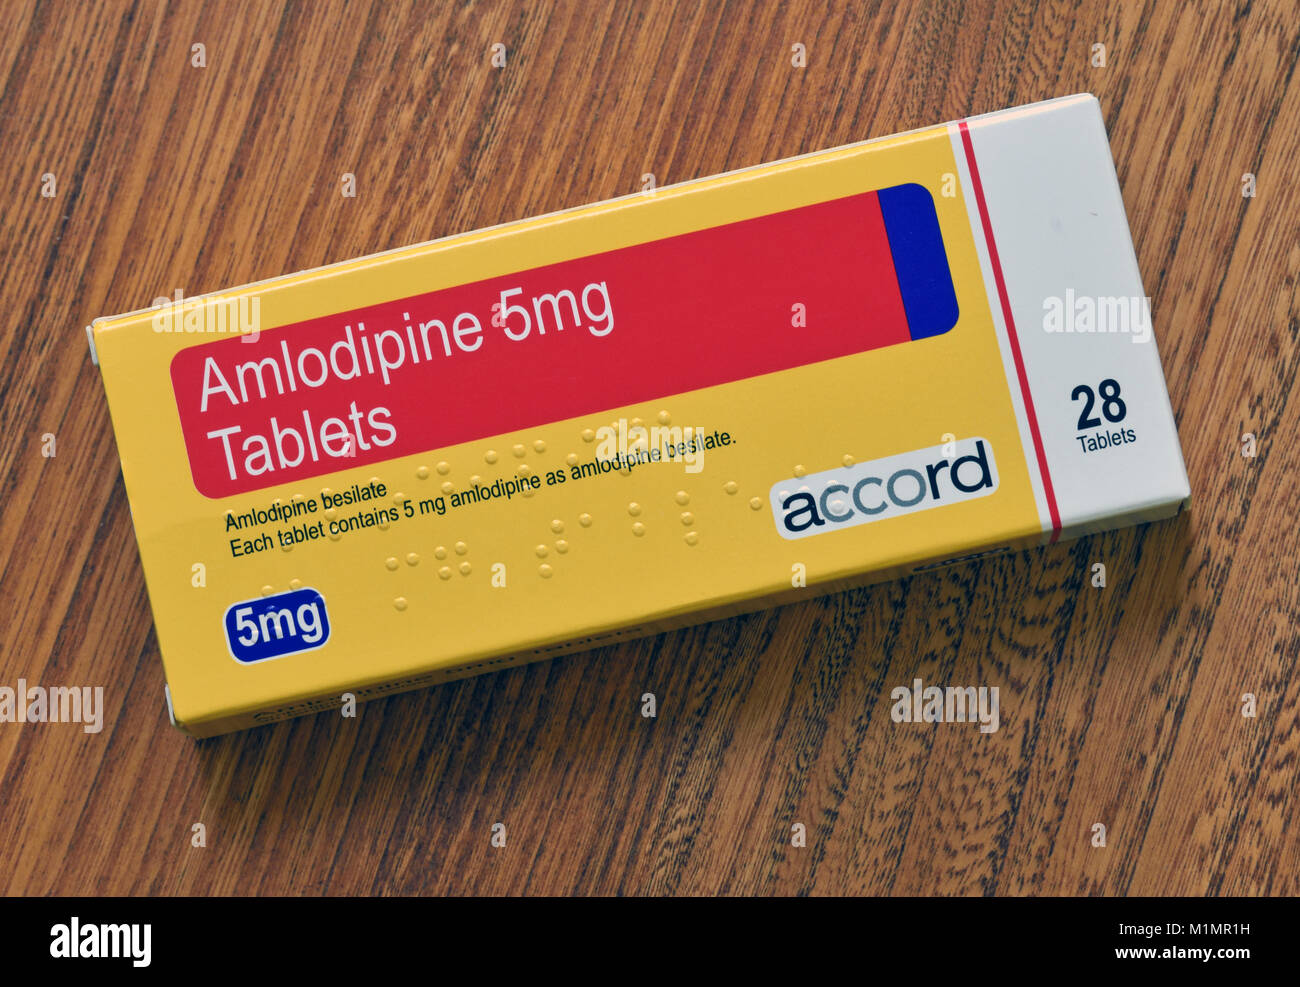 pack-of-amlodipine-5mg-tablets-28-tablets-amlodipine-besilate-each-M1MR1H.jpg